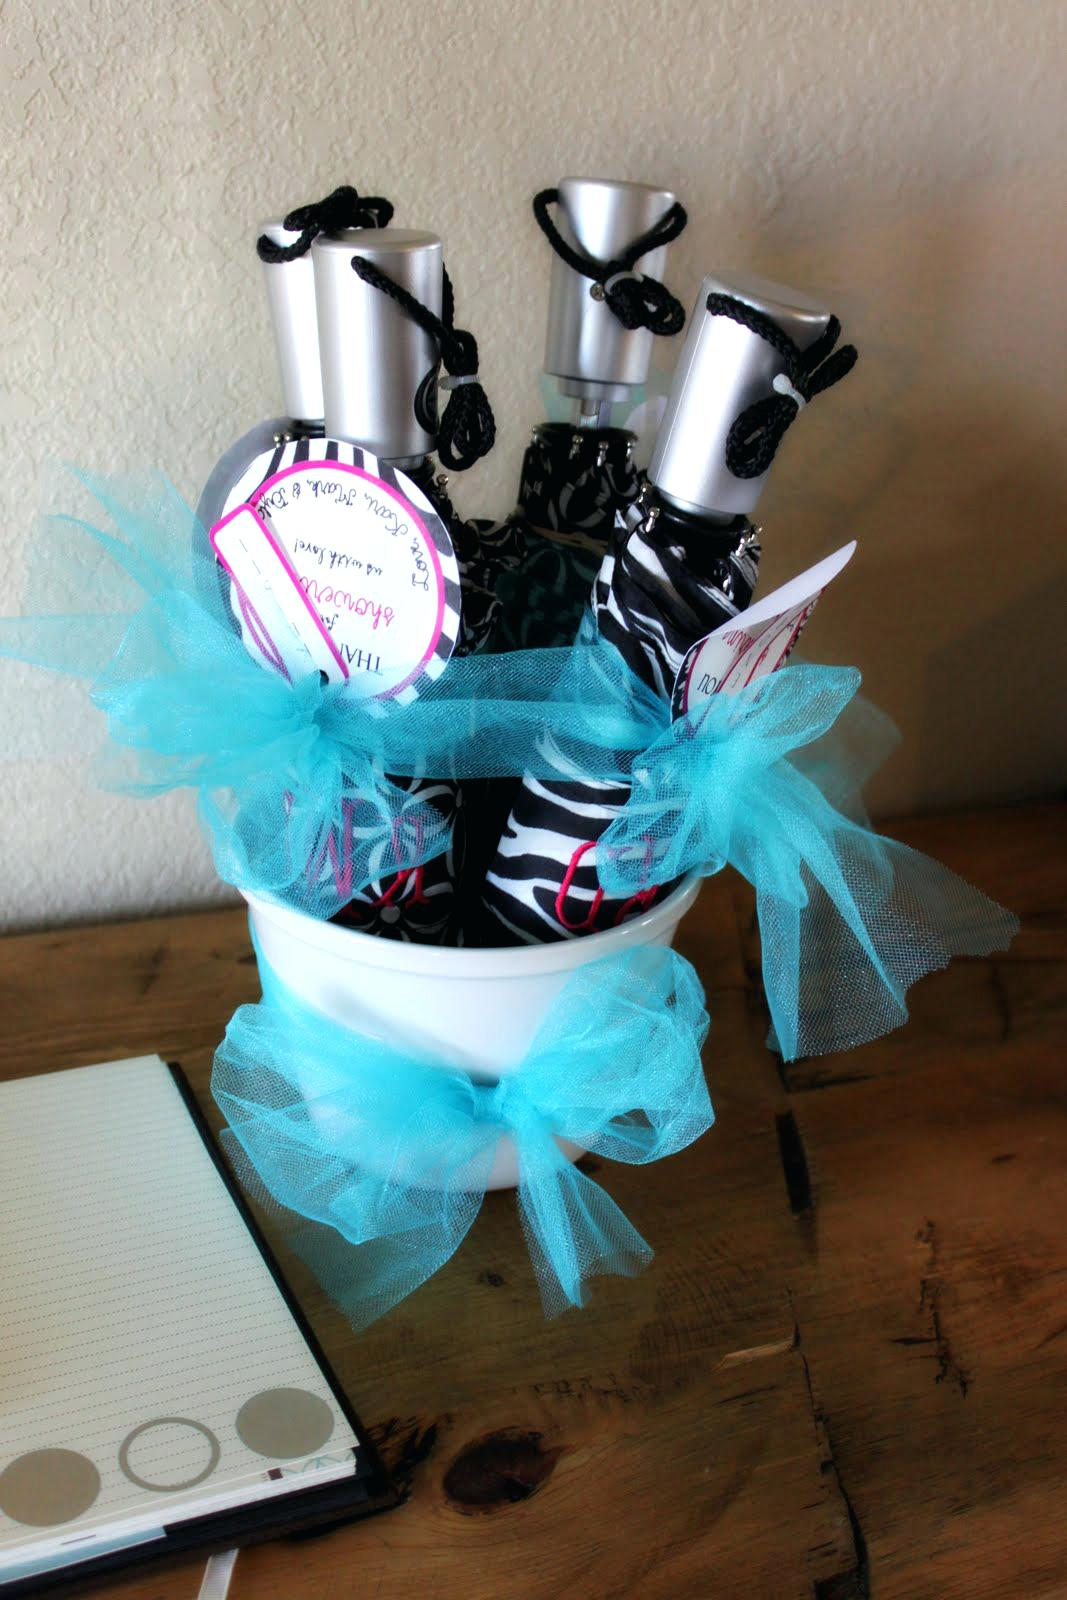 Full Size of Baby Shower:64+ Splendiferous Baby Shower Hostess Gifts Photo Inspirations Baby Shower Hostess Gifts Ideas Dreaded Grandma Baby Shower Gifts Grandmother Gift The Rhoads Family Baby Shower Hostess Gifts Etiquette Wine Cheap For Grandmas Ideas Multiple Hostesses Under